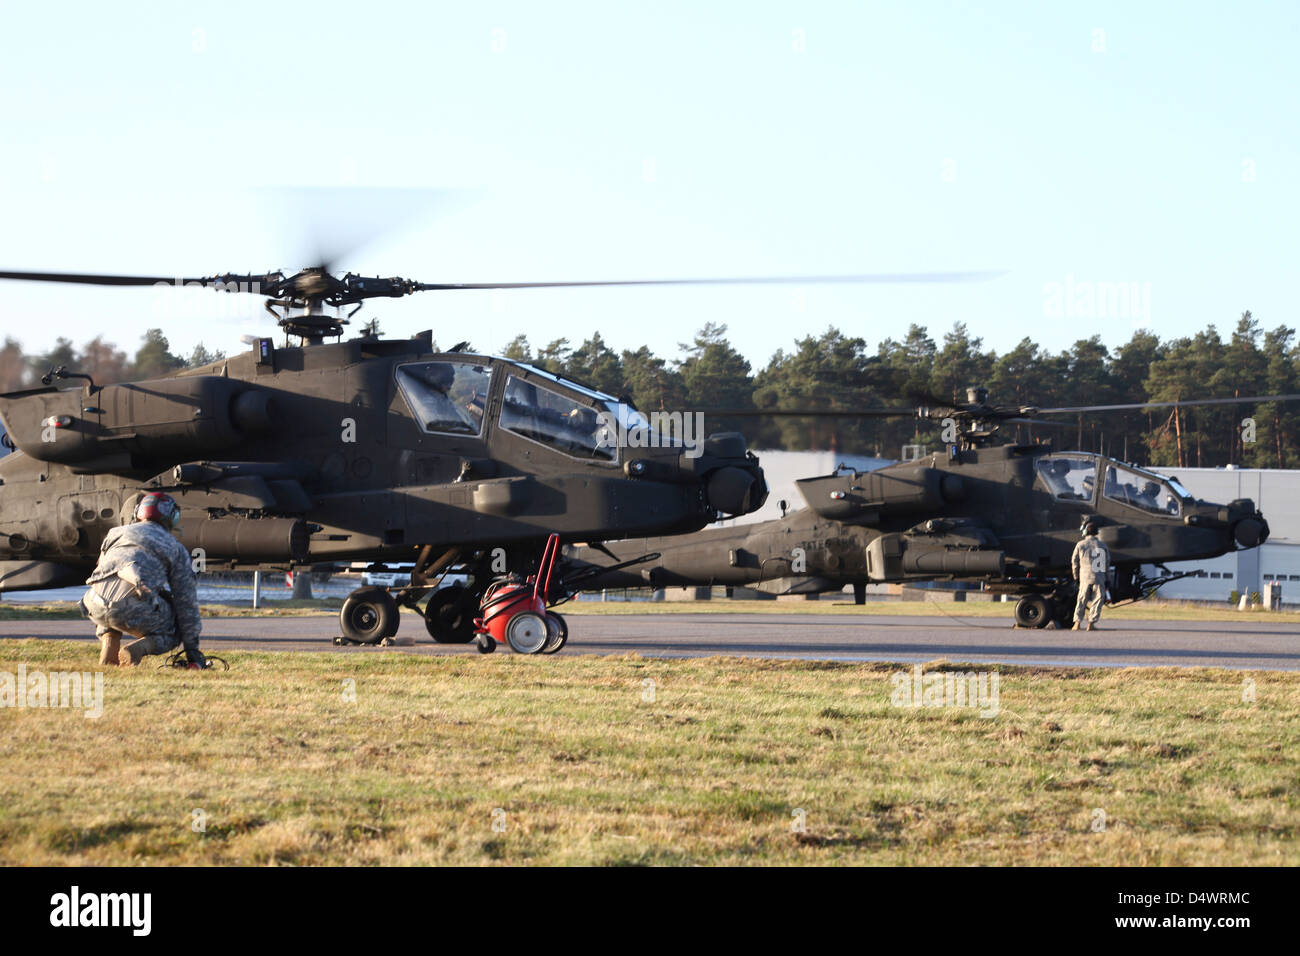 U.S. Army AH-64D Apache helicopters prepare for takeoff. Stock Photo